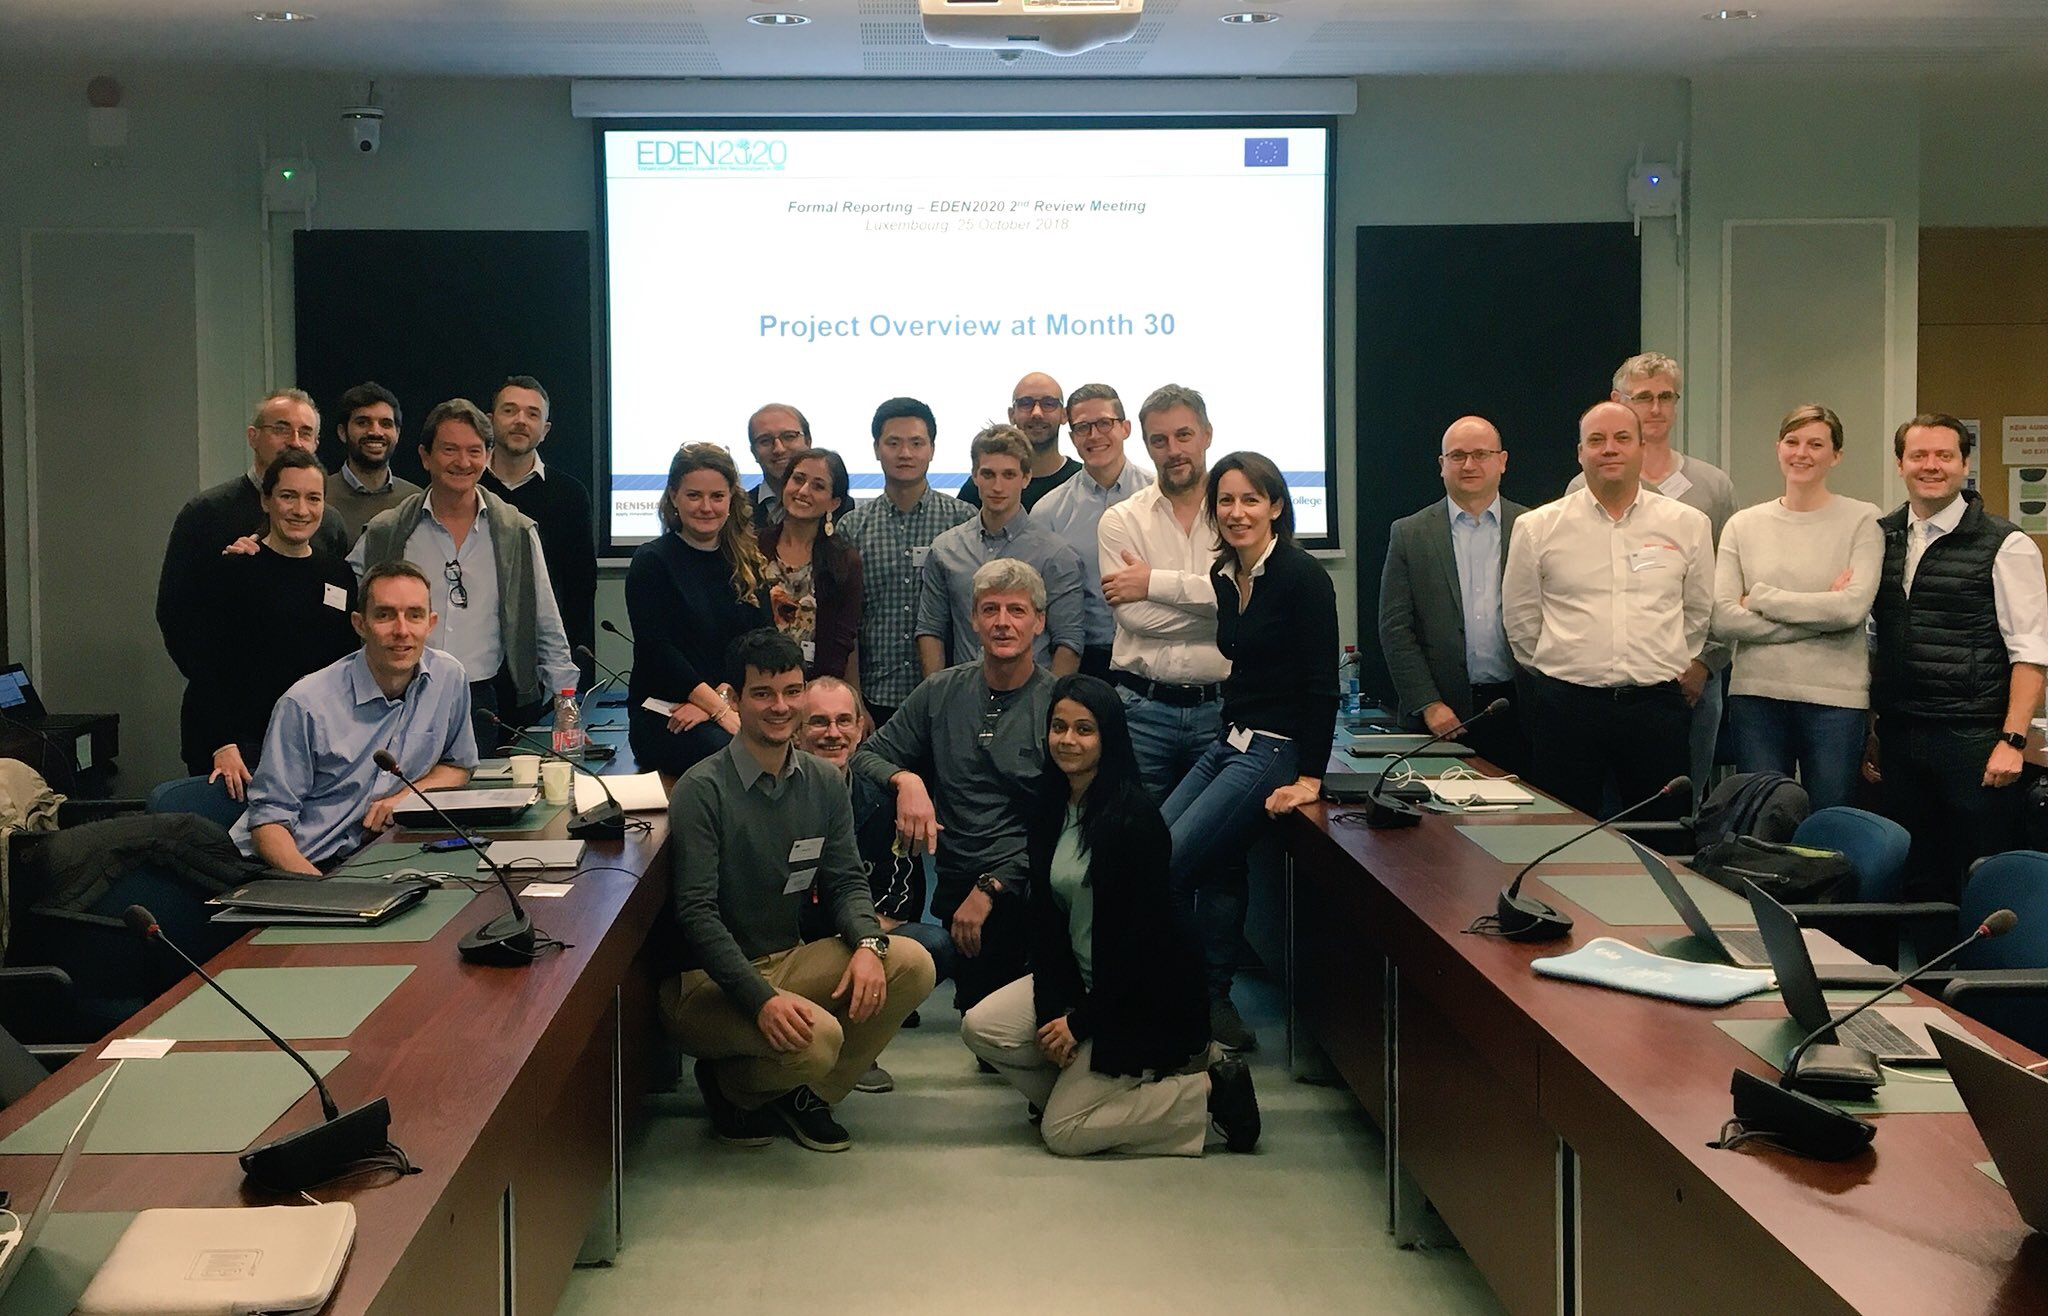 EDEN2020's Project and Review Meetings (M13-M30) in Luxembourg